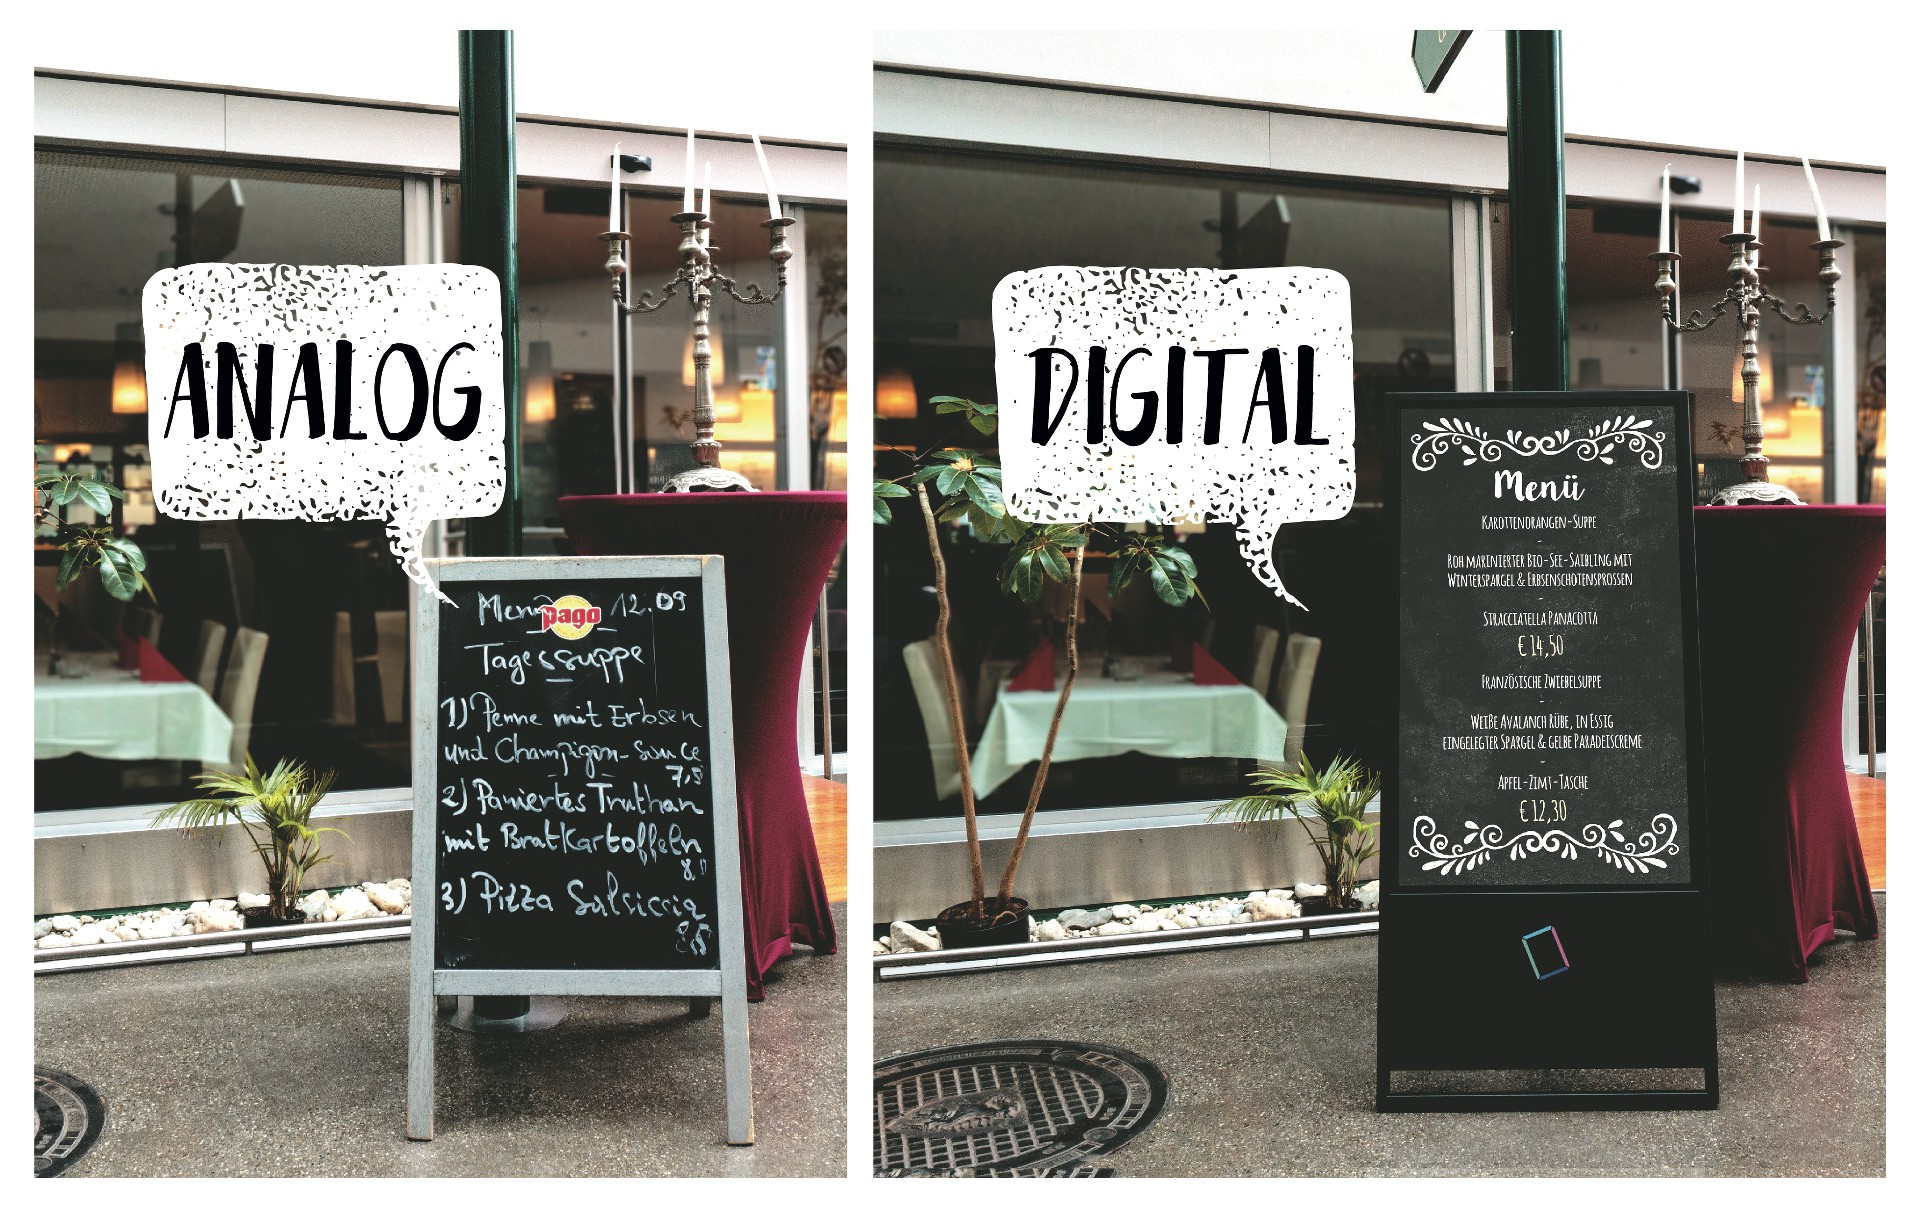 Kreidetafel anolog vs. digital